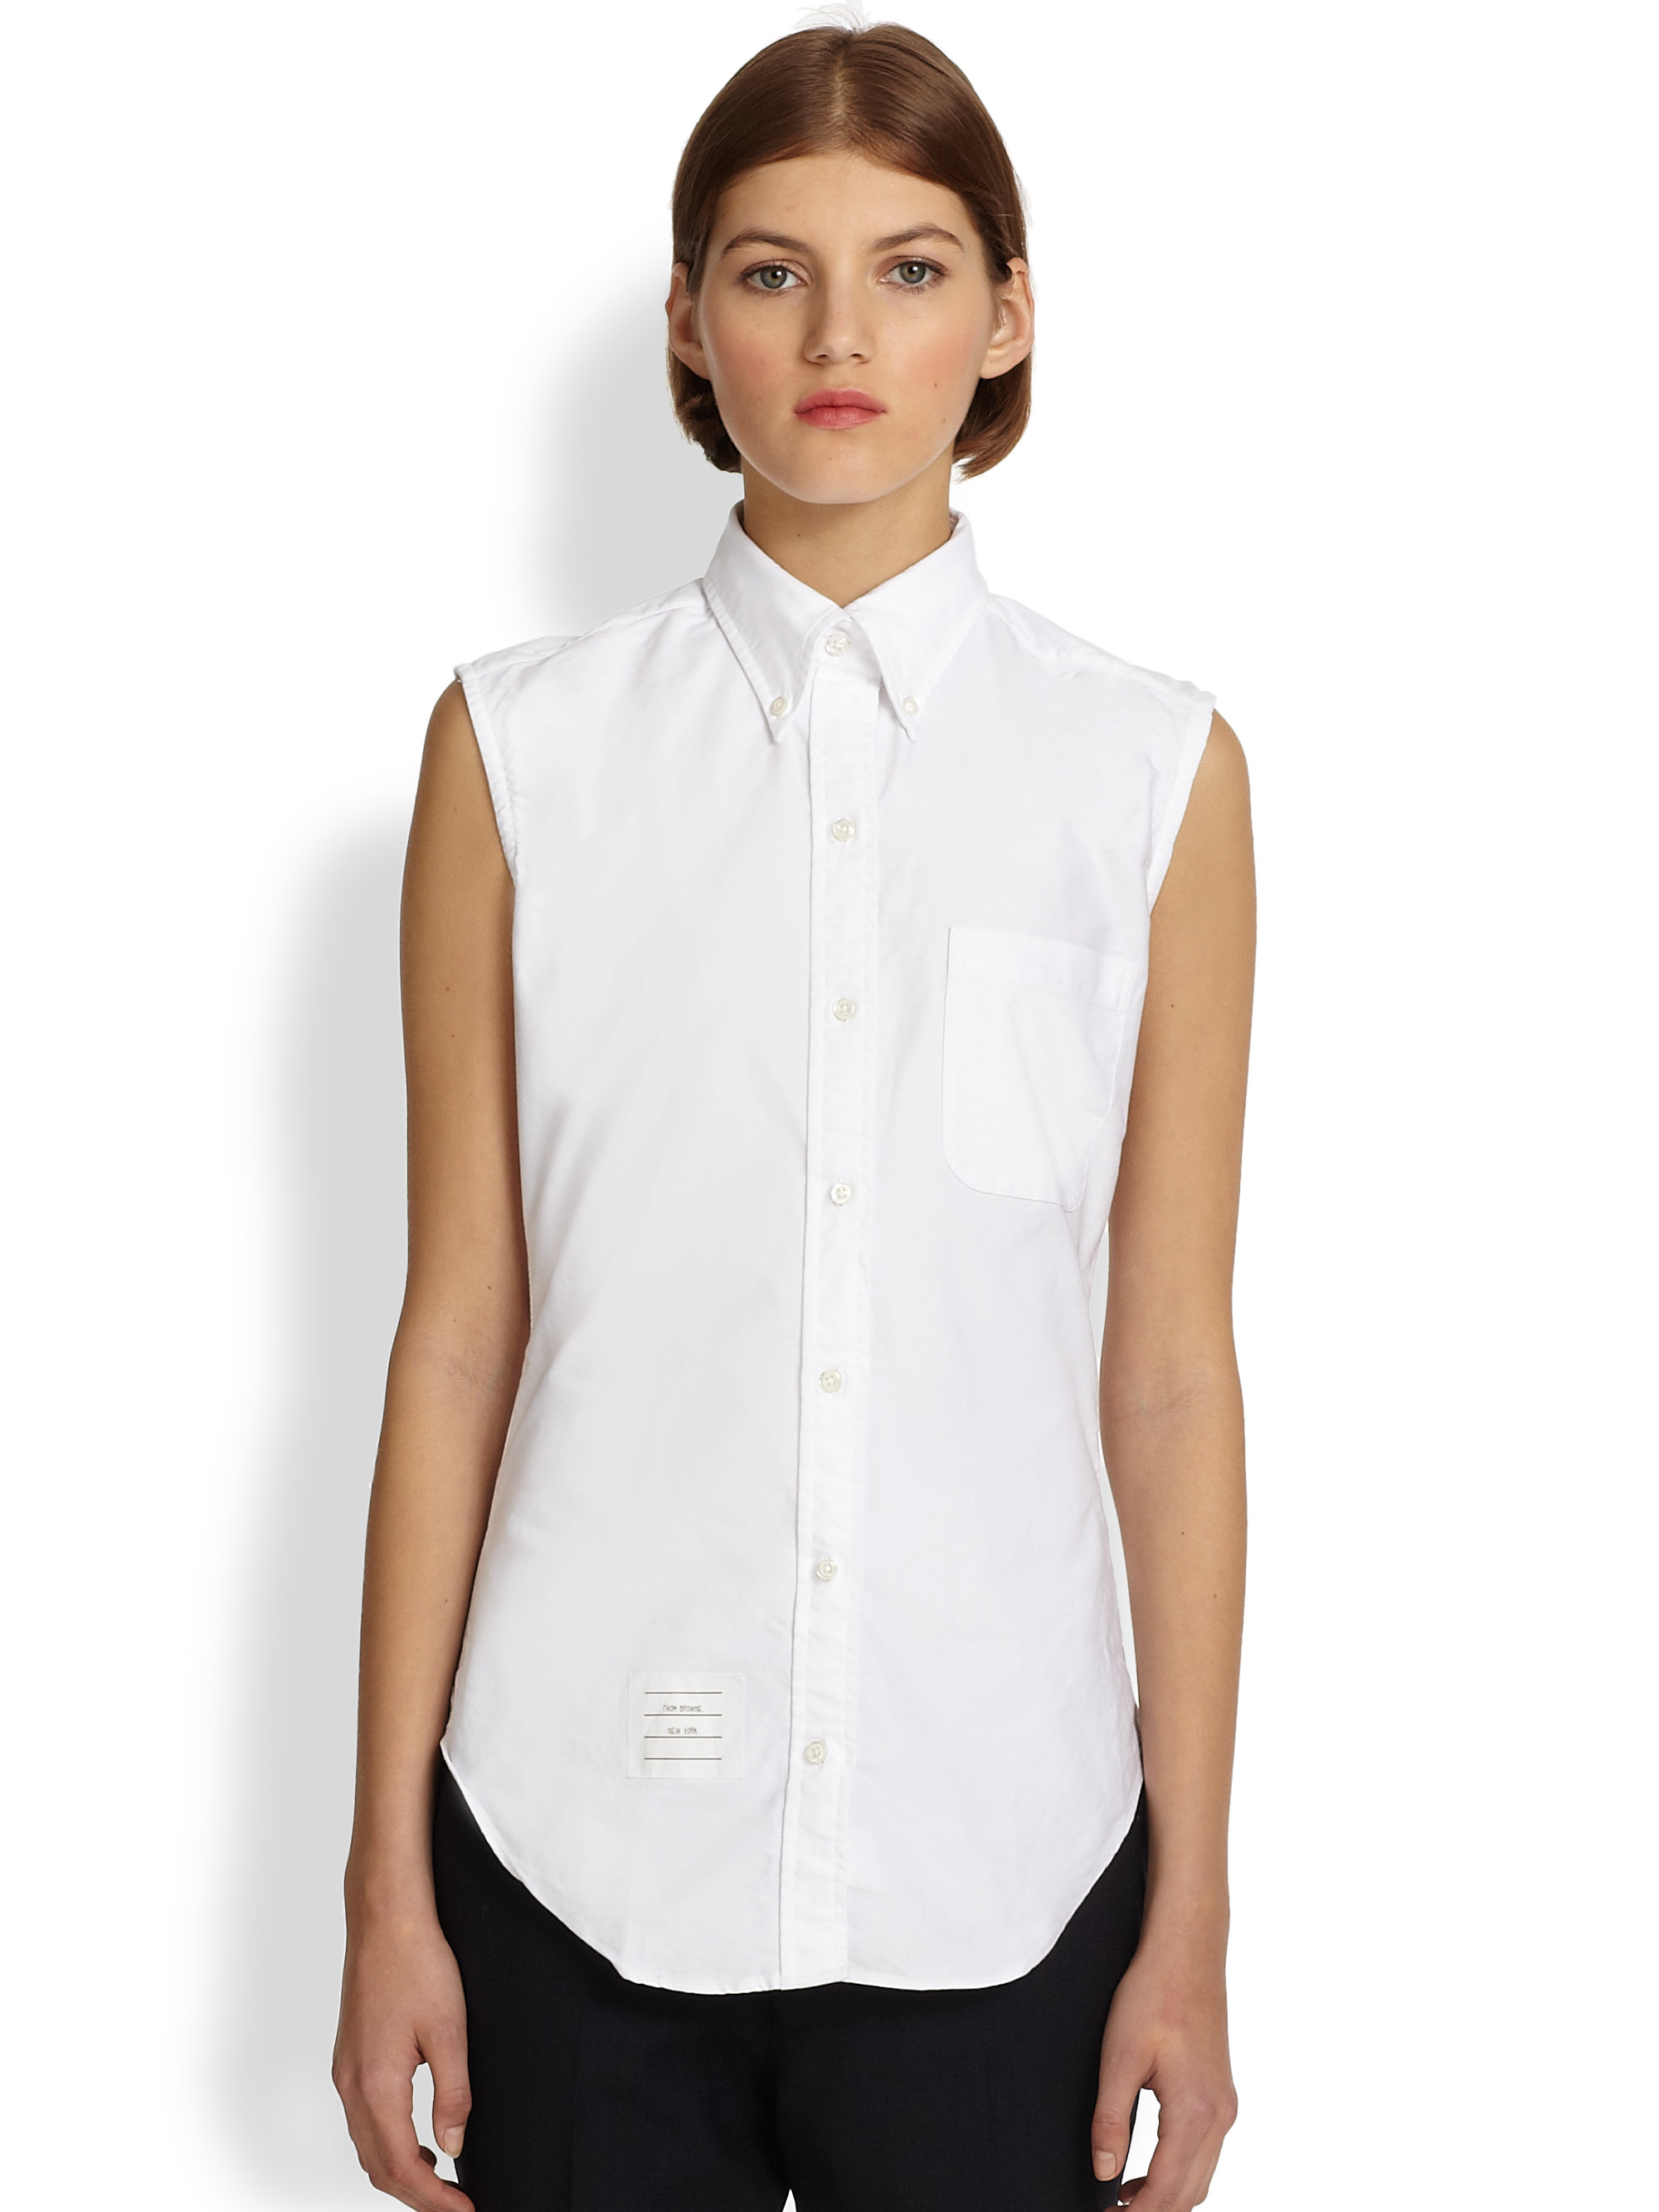 a1a595f2 Thom Browne Sleeveless Oxford Shirt in White - Lyst